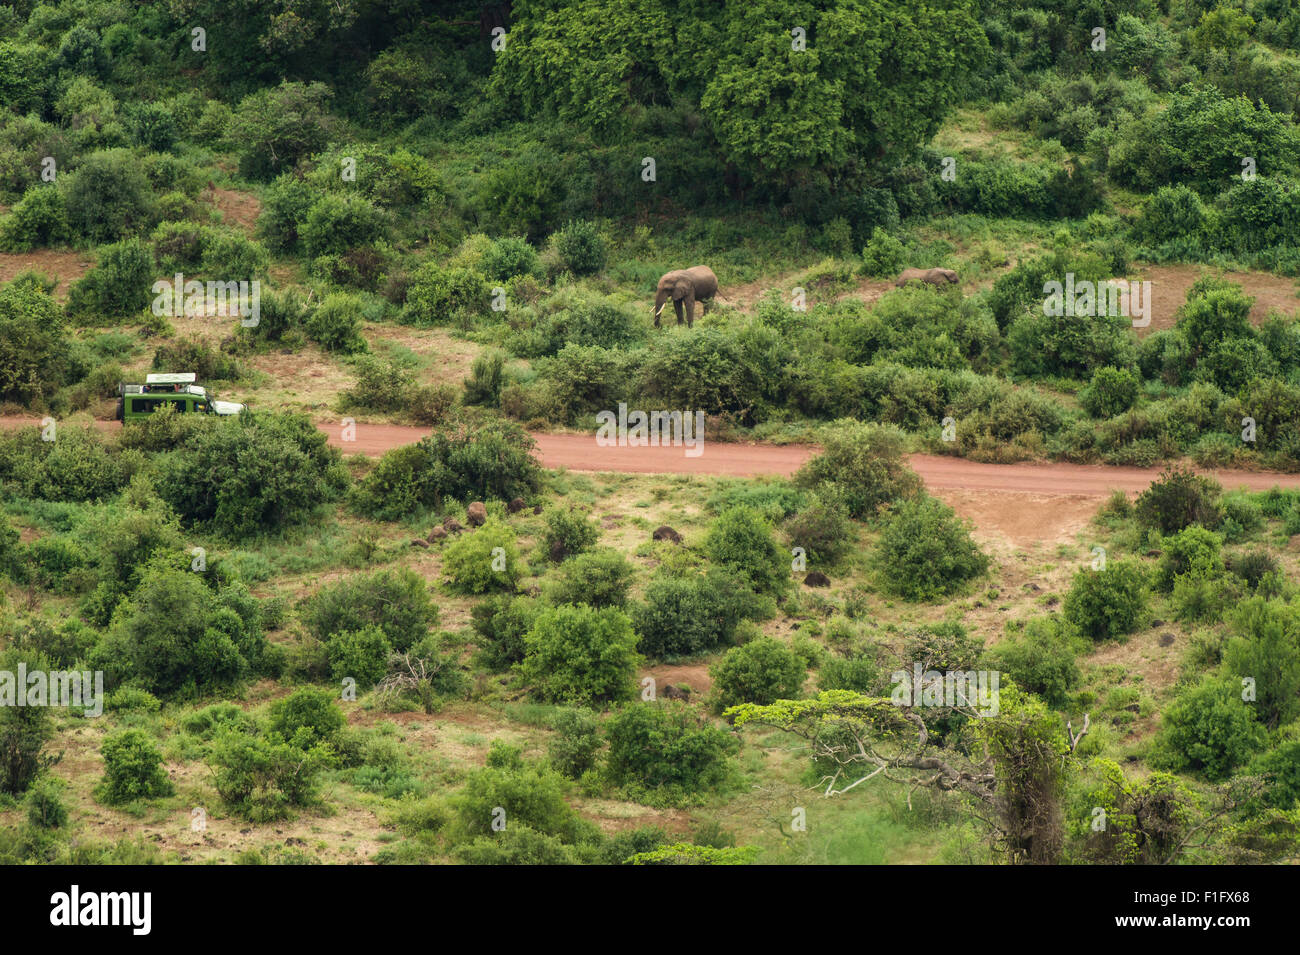 Lake Manyara, Tanzania Tourists encounter elephant on safari - Stock Image